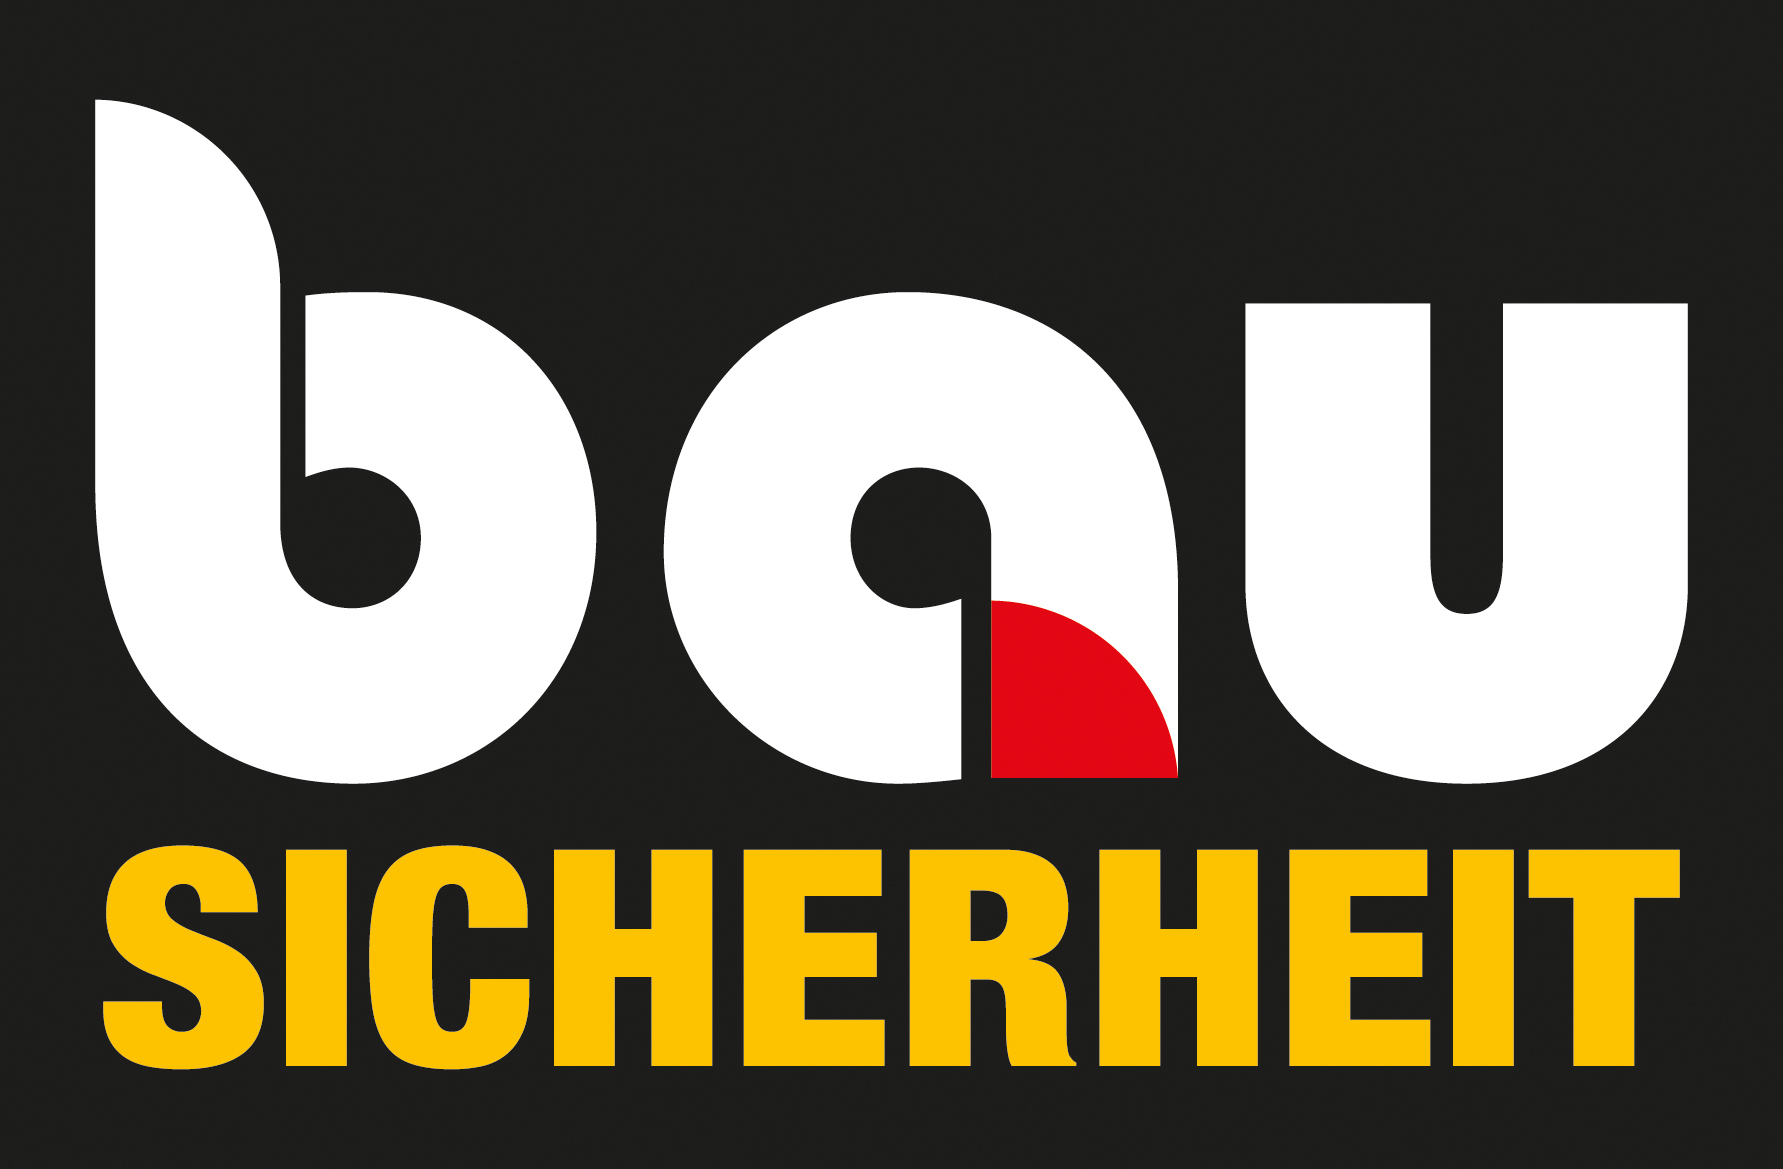 bauSICHERHEIT